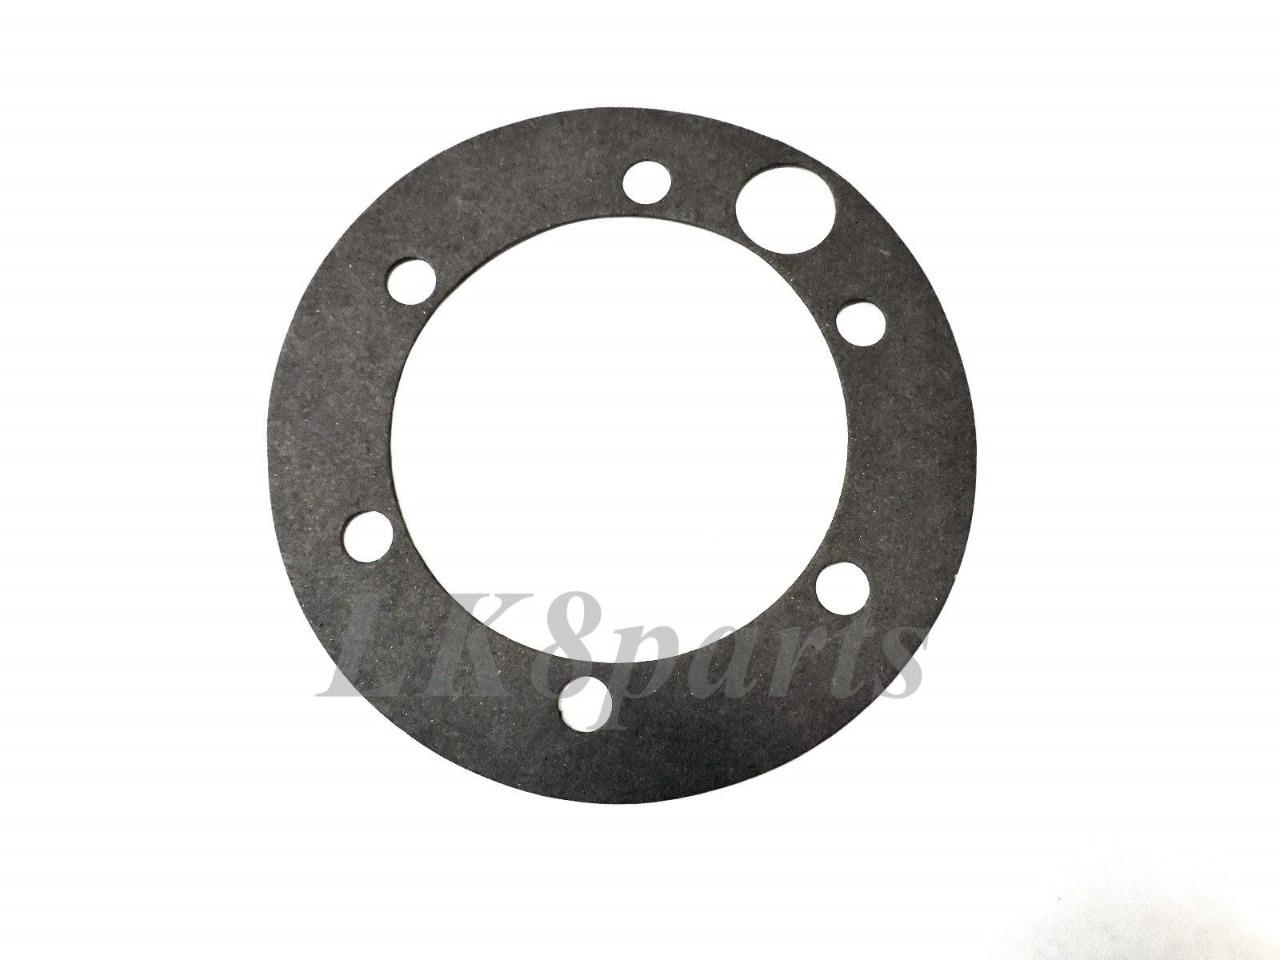 Bearmach Land Rover Disco Defender /& RR Classic Stub Axle Gaskets FTC3650 x 2